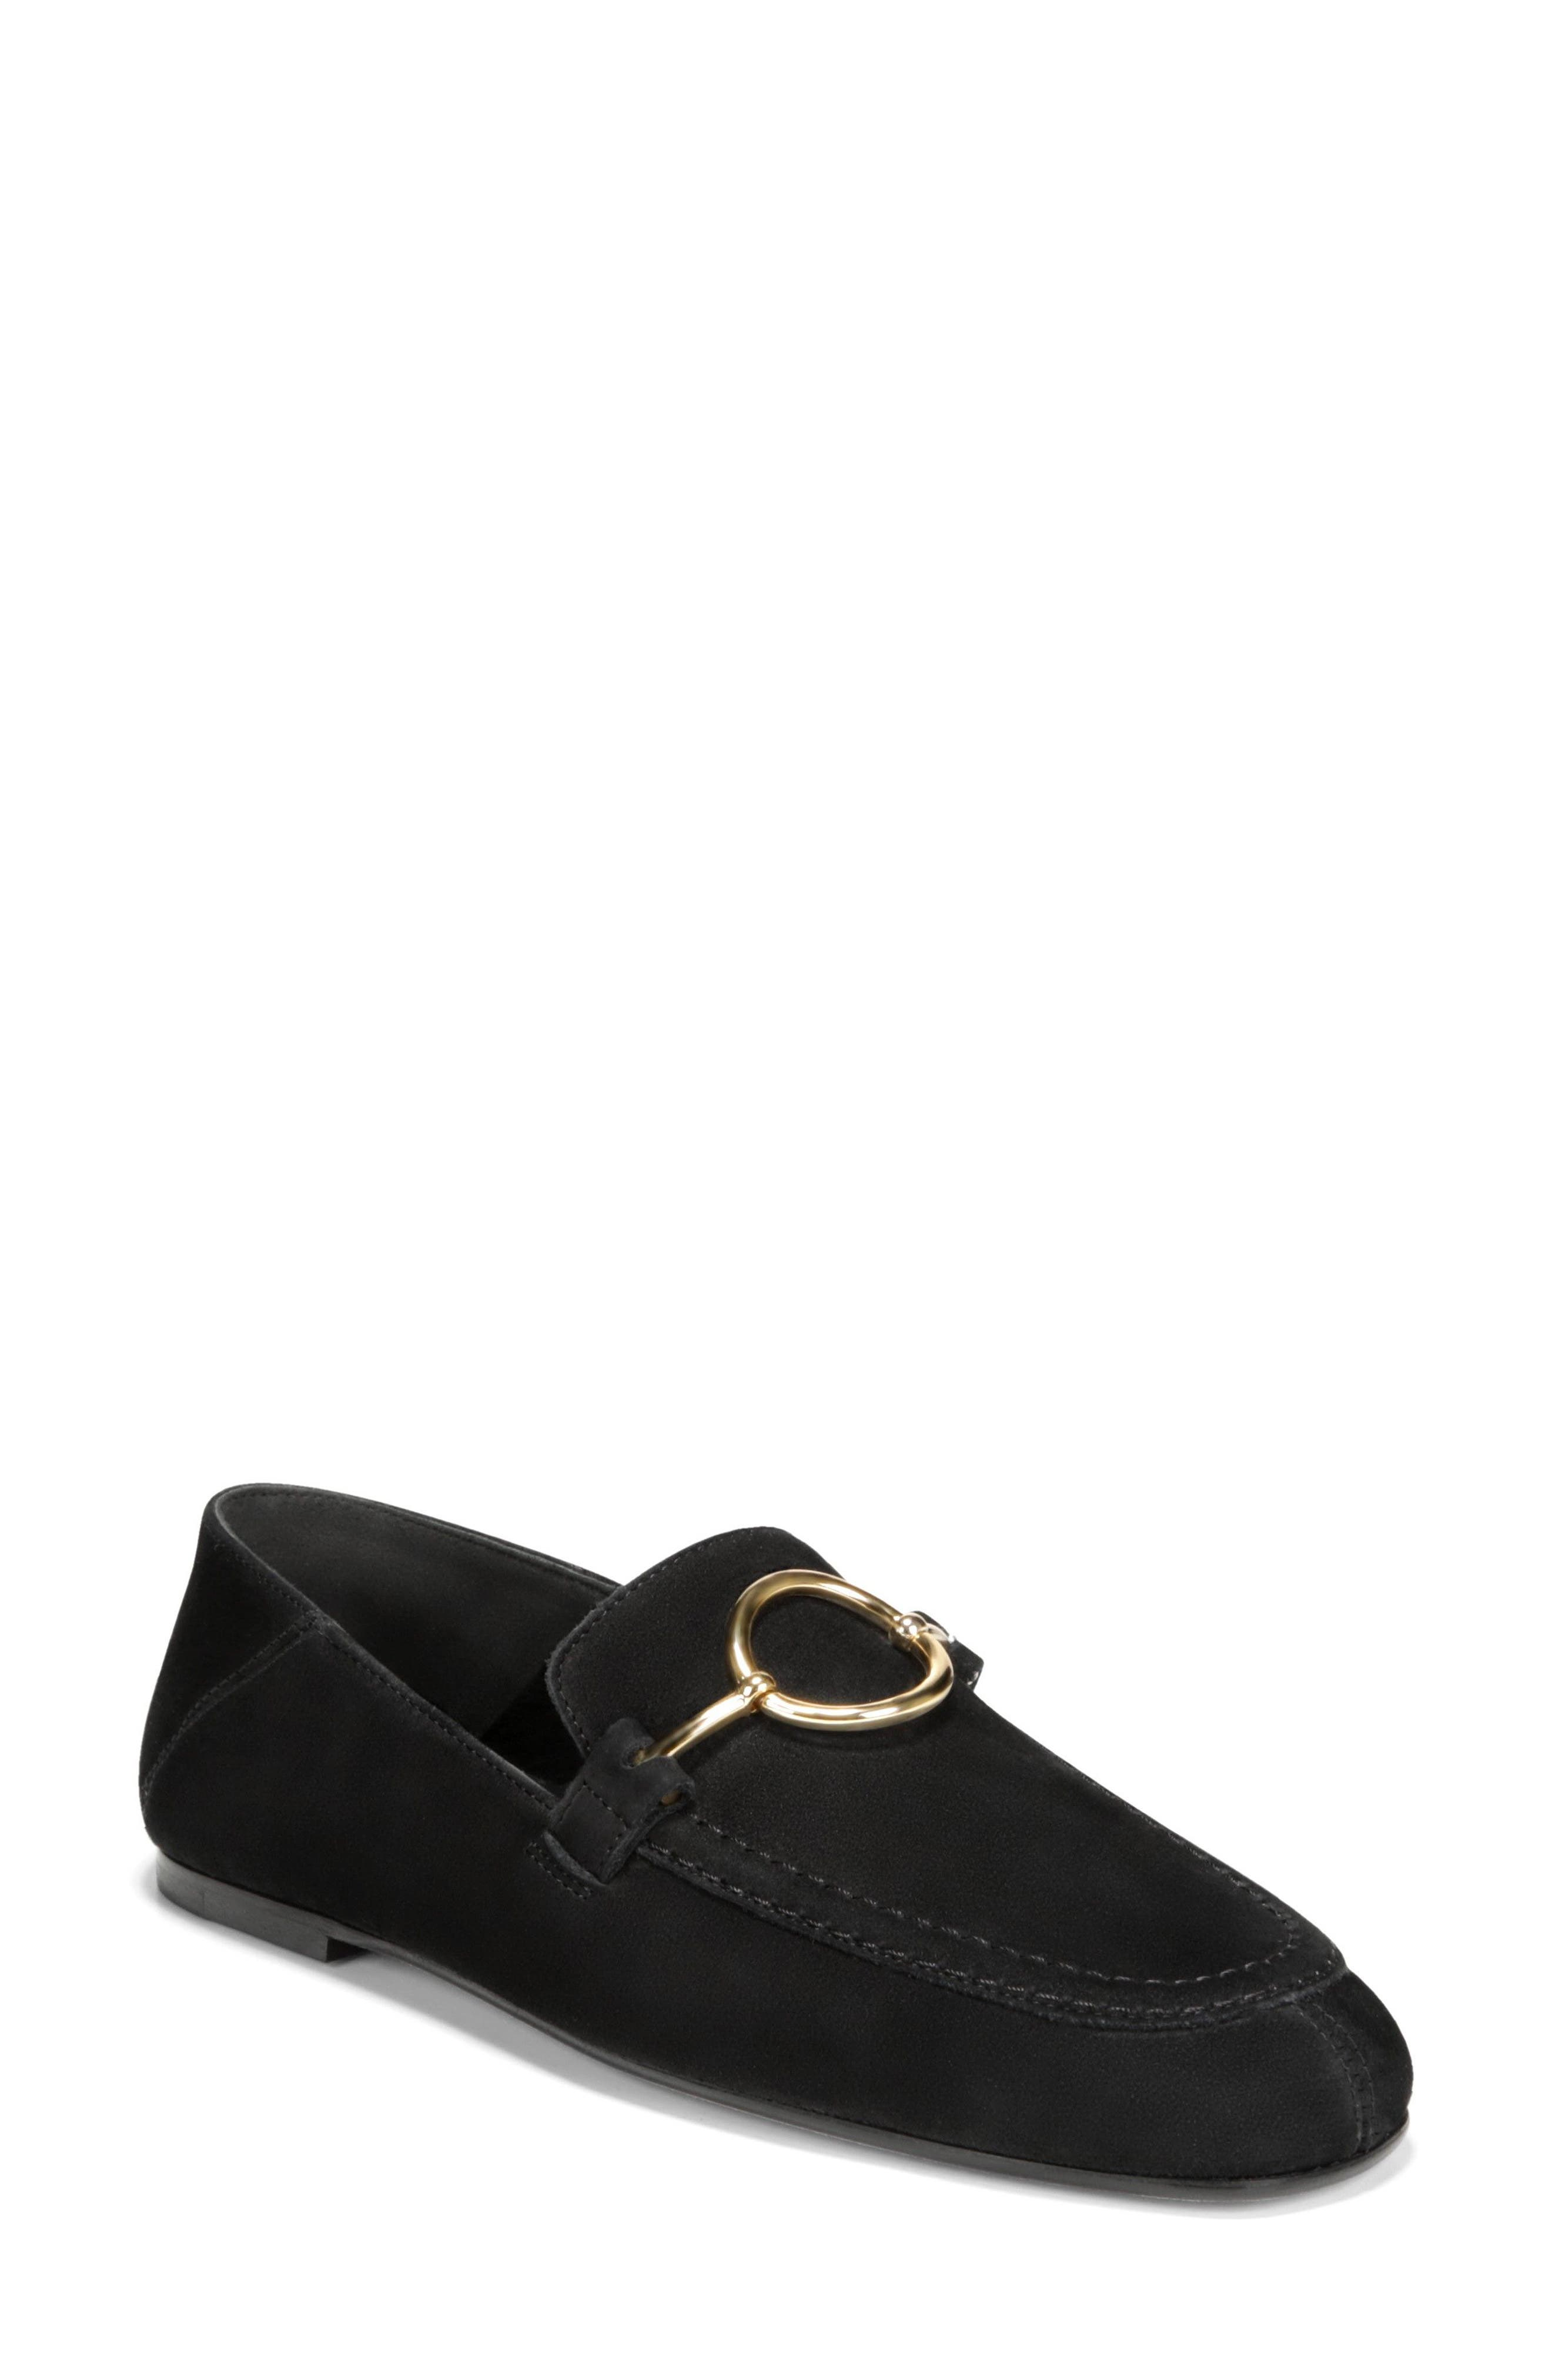 Abby Loafer,                             Main thumbnail 1, color,                             BLACK NUBUCK LEATHER